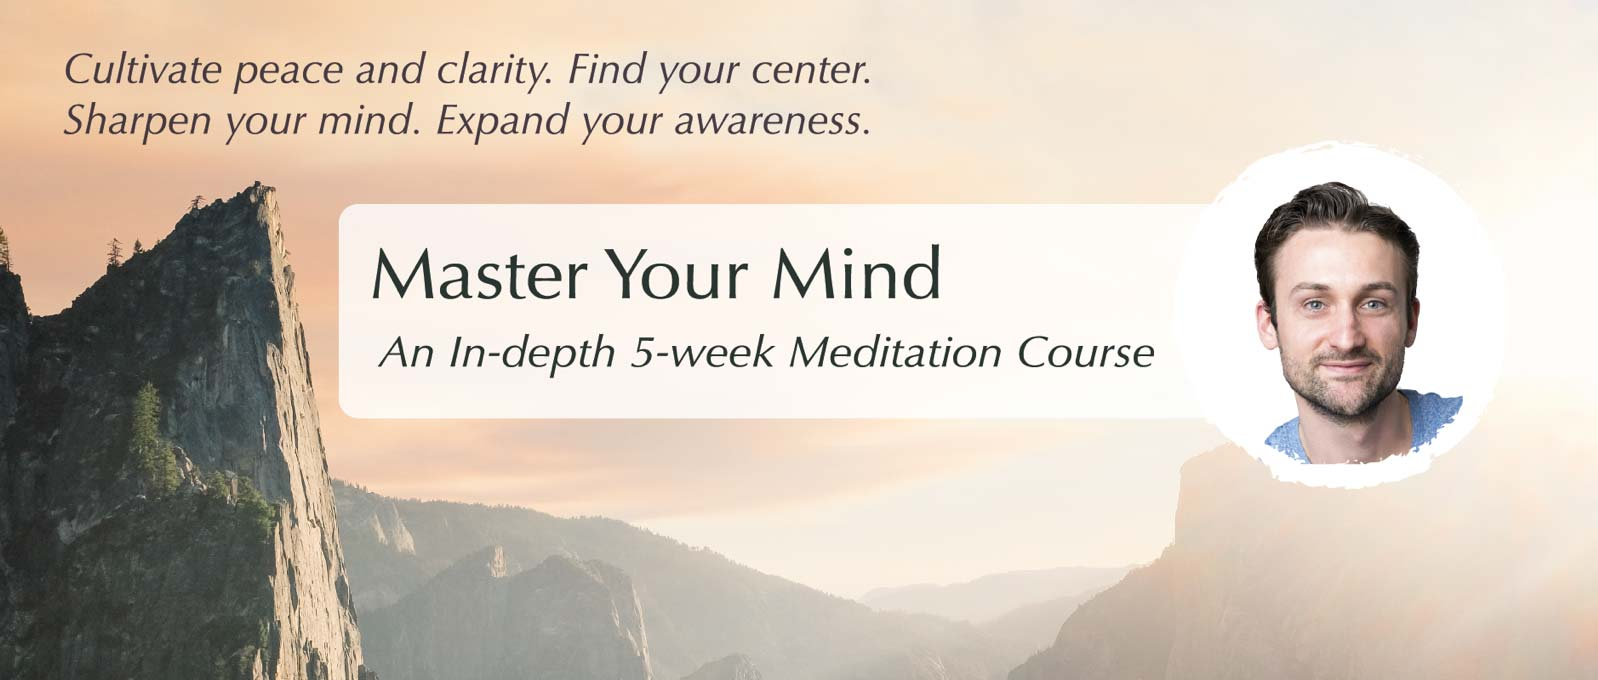 Learn how to meditate with the 5-week comprehensive meditation course for beginners Master Your Mind. #meditationforbeginners #masteryourmind #meditation #affiliatelink